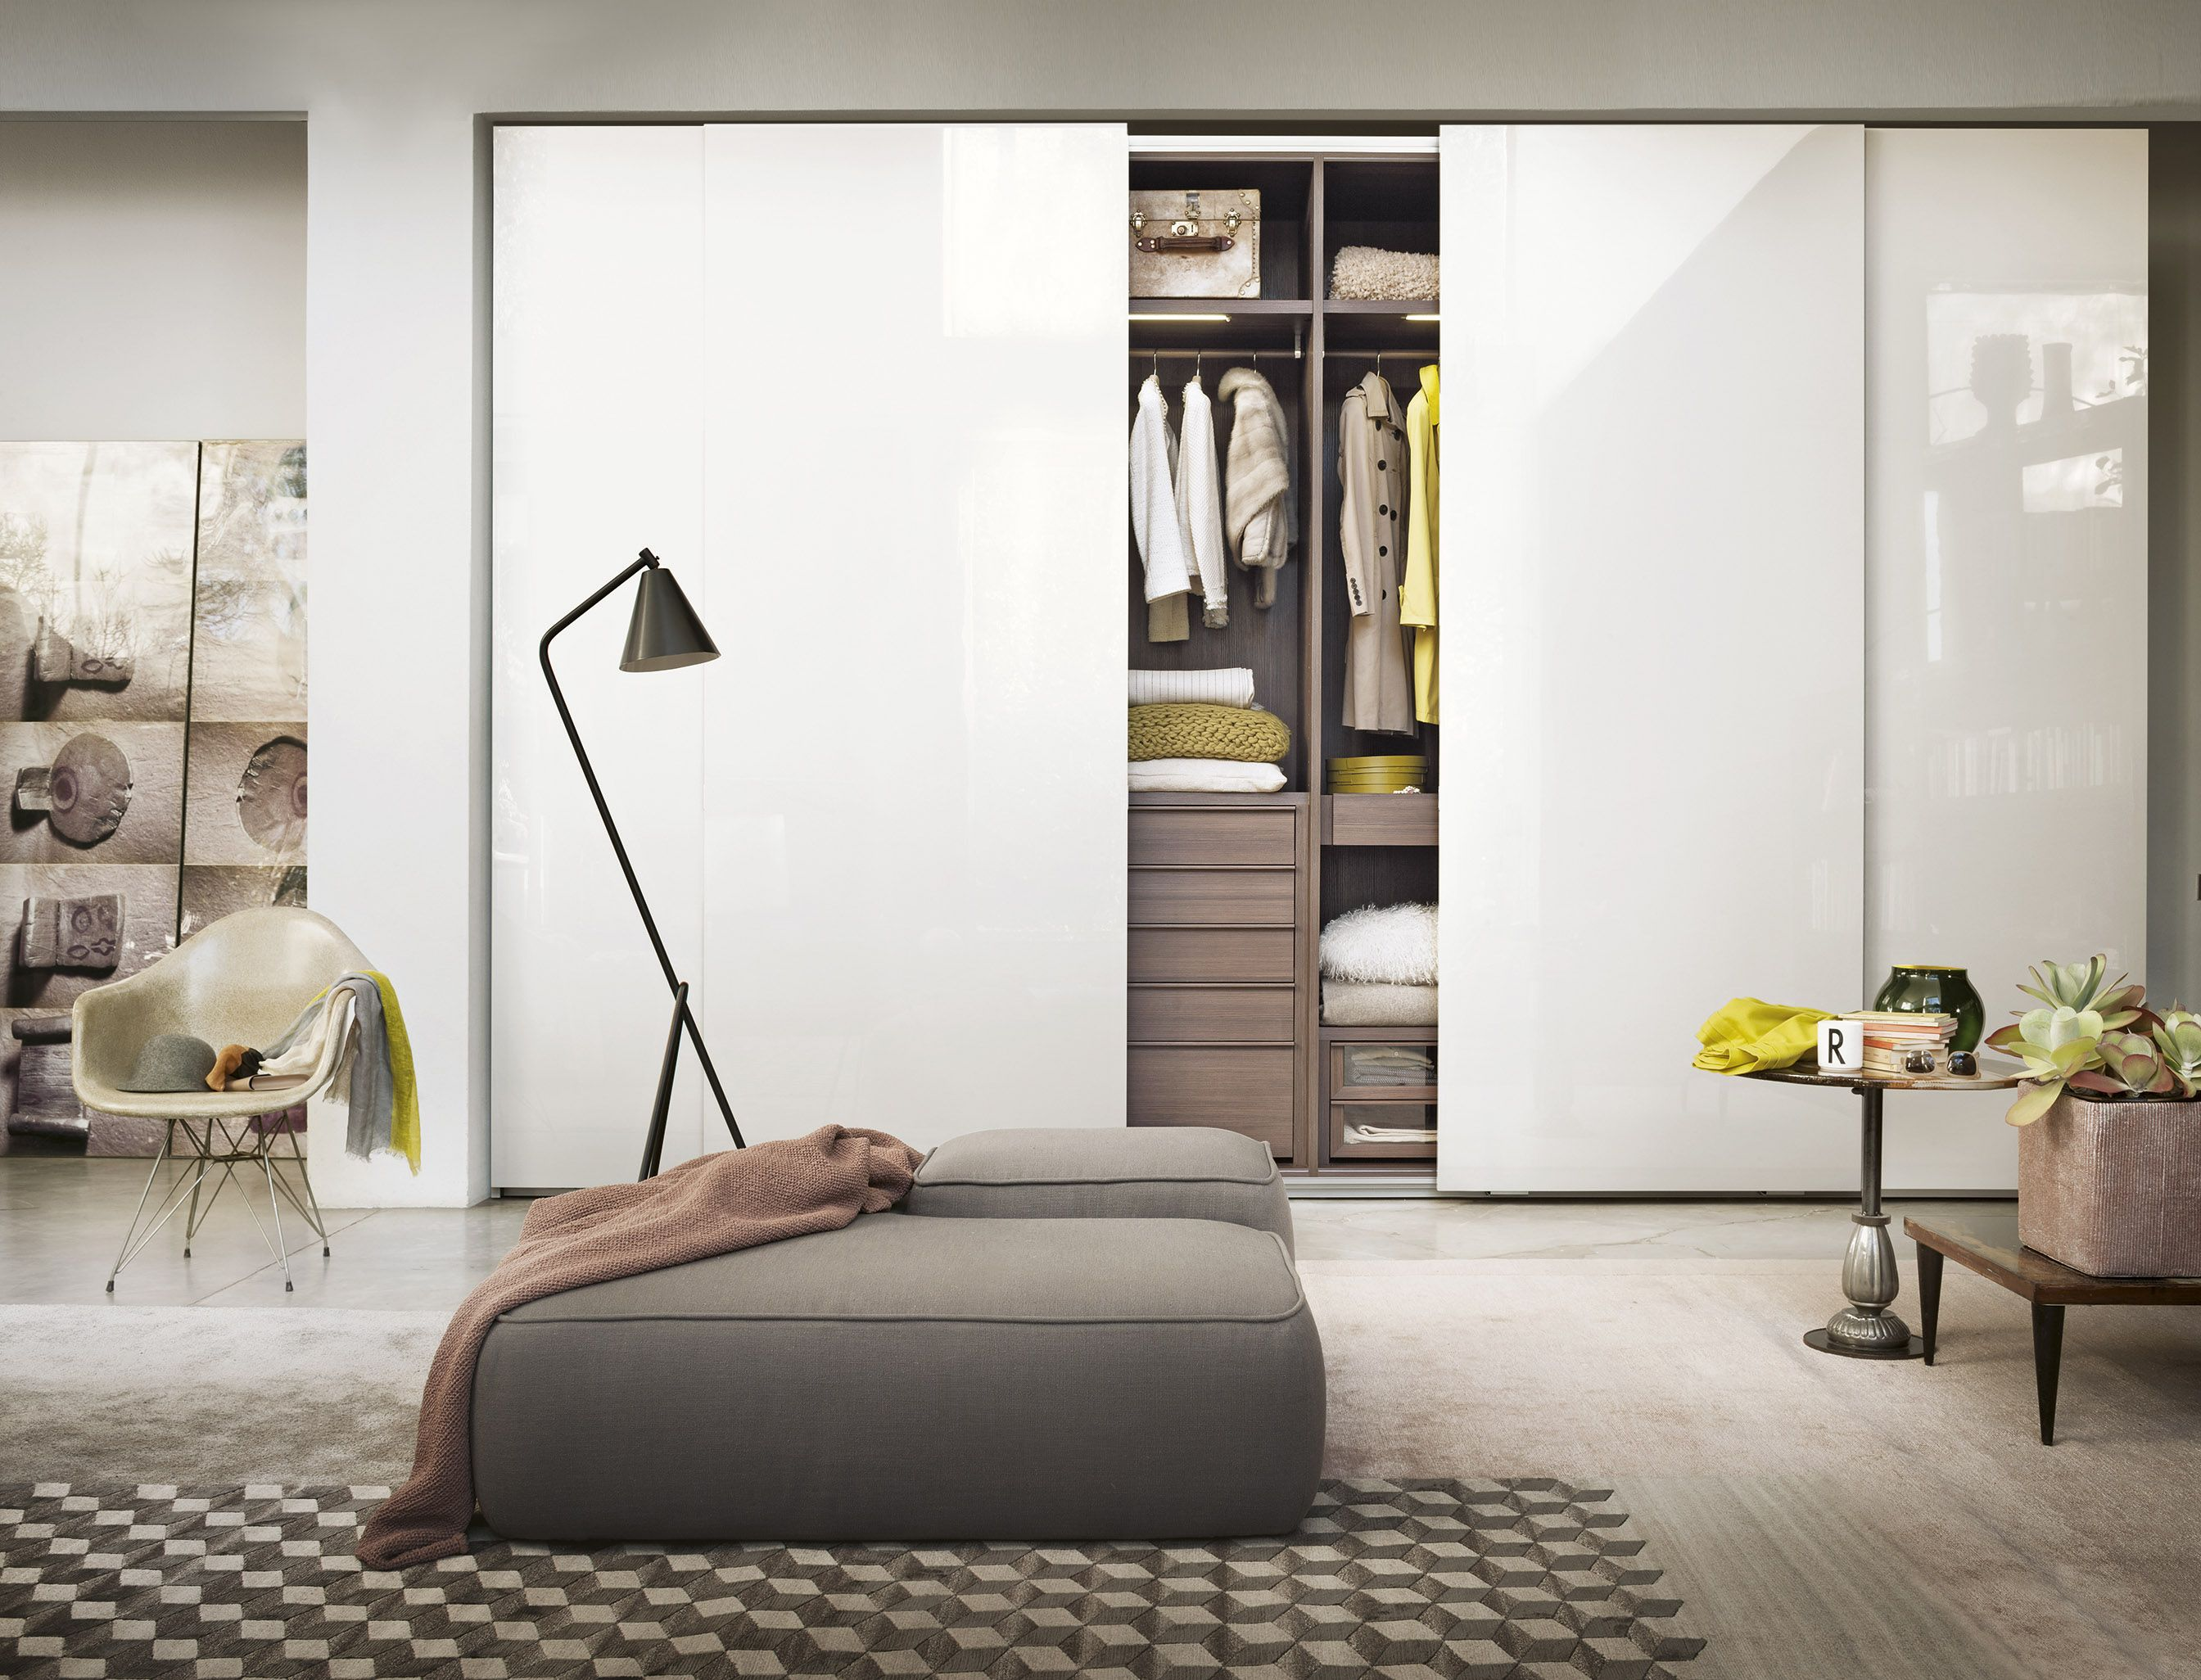 Modularity And Customisation Are The Key Words Of Armadio Al Centimetro Made To Measure Wardrobe Lemas Historic Project That Offers Utmost Freedom In